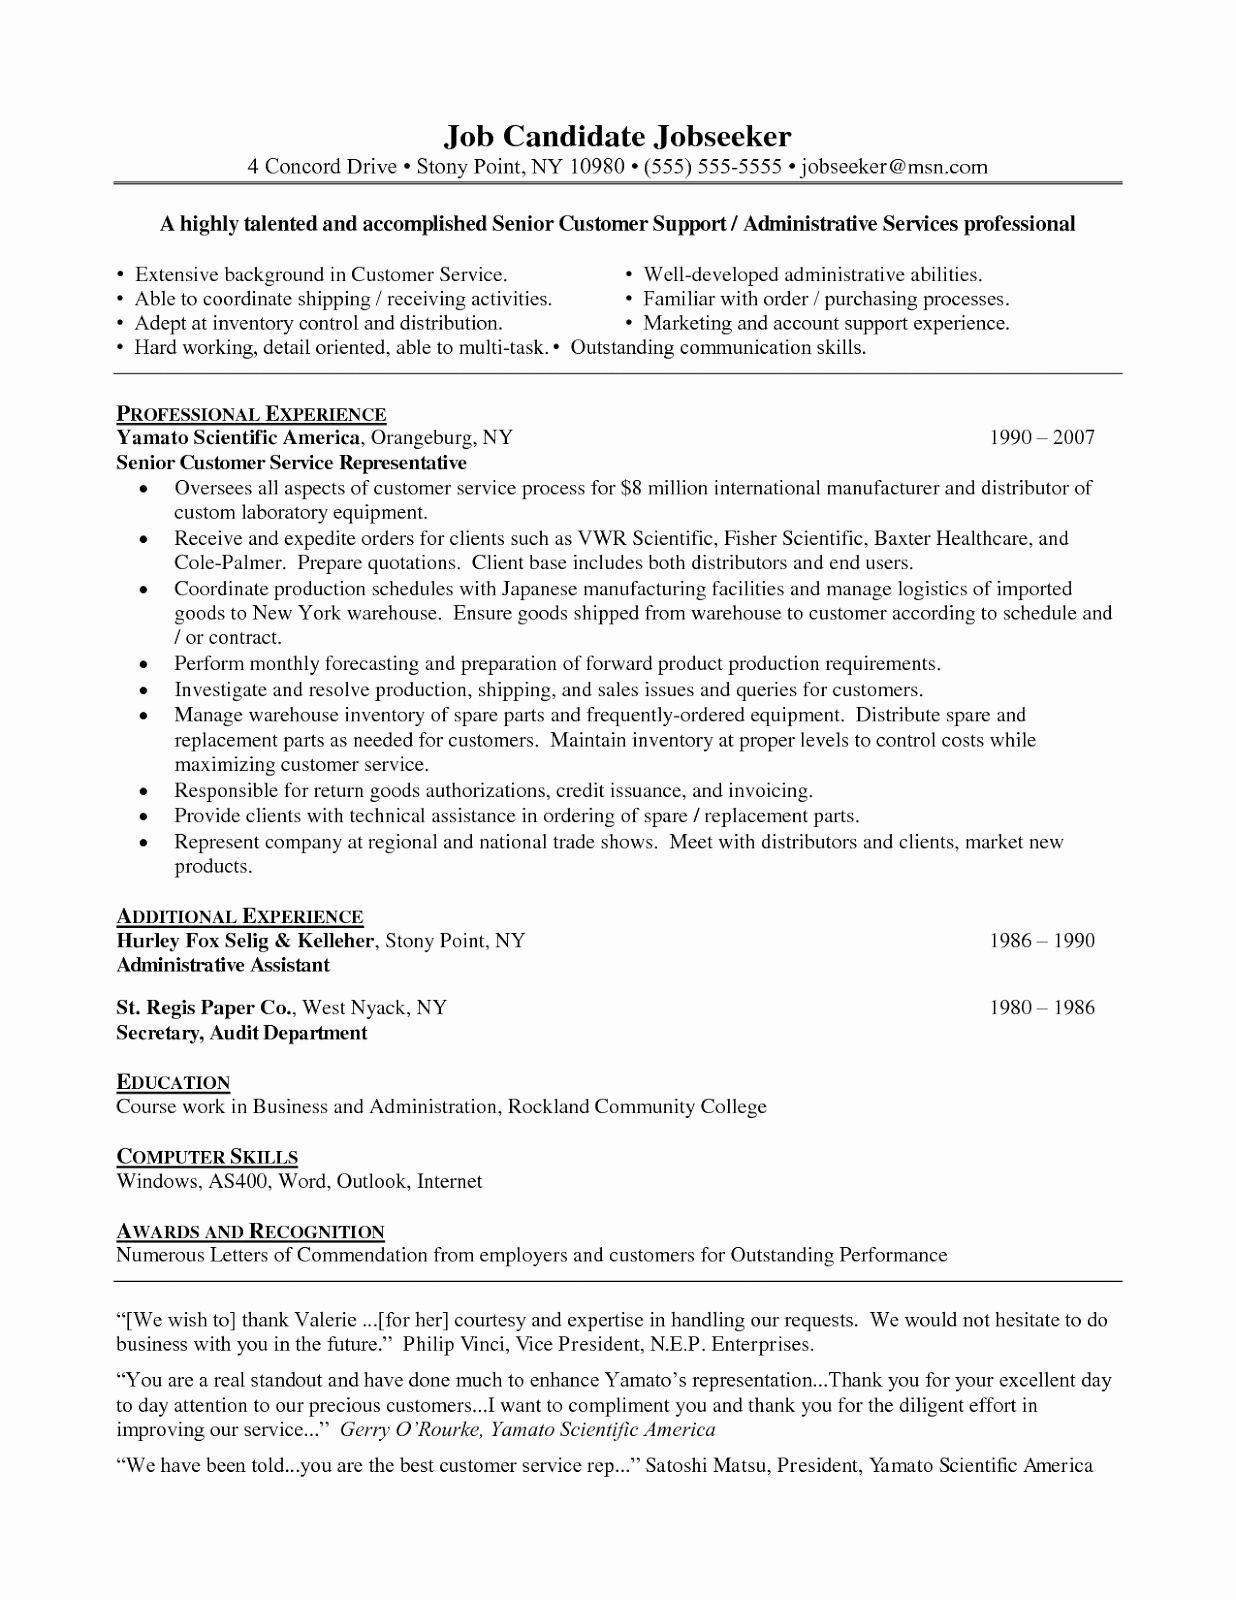 As400 Administrator Sample Resume Amusing Resume Format For 1 Year Experience Dot Net Developer Archives .